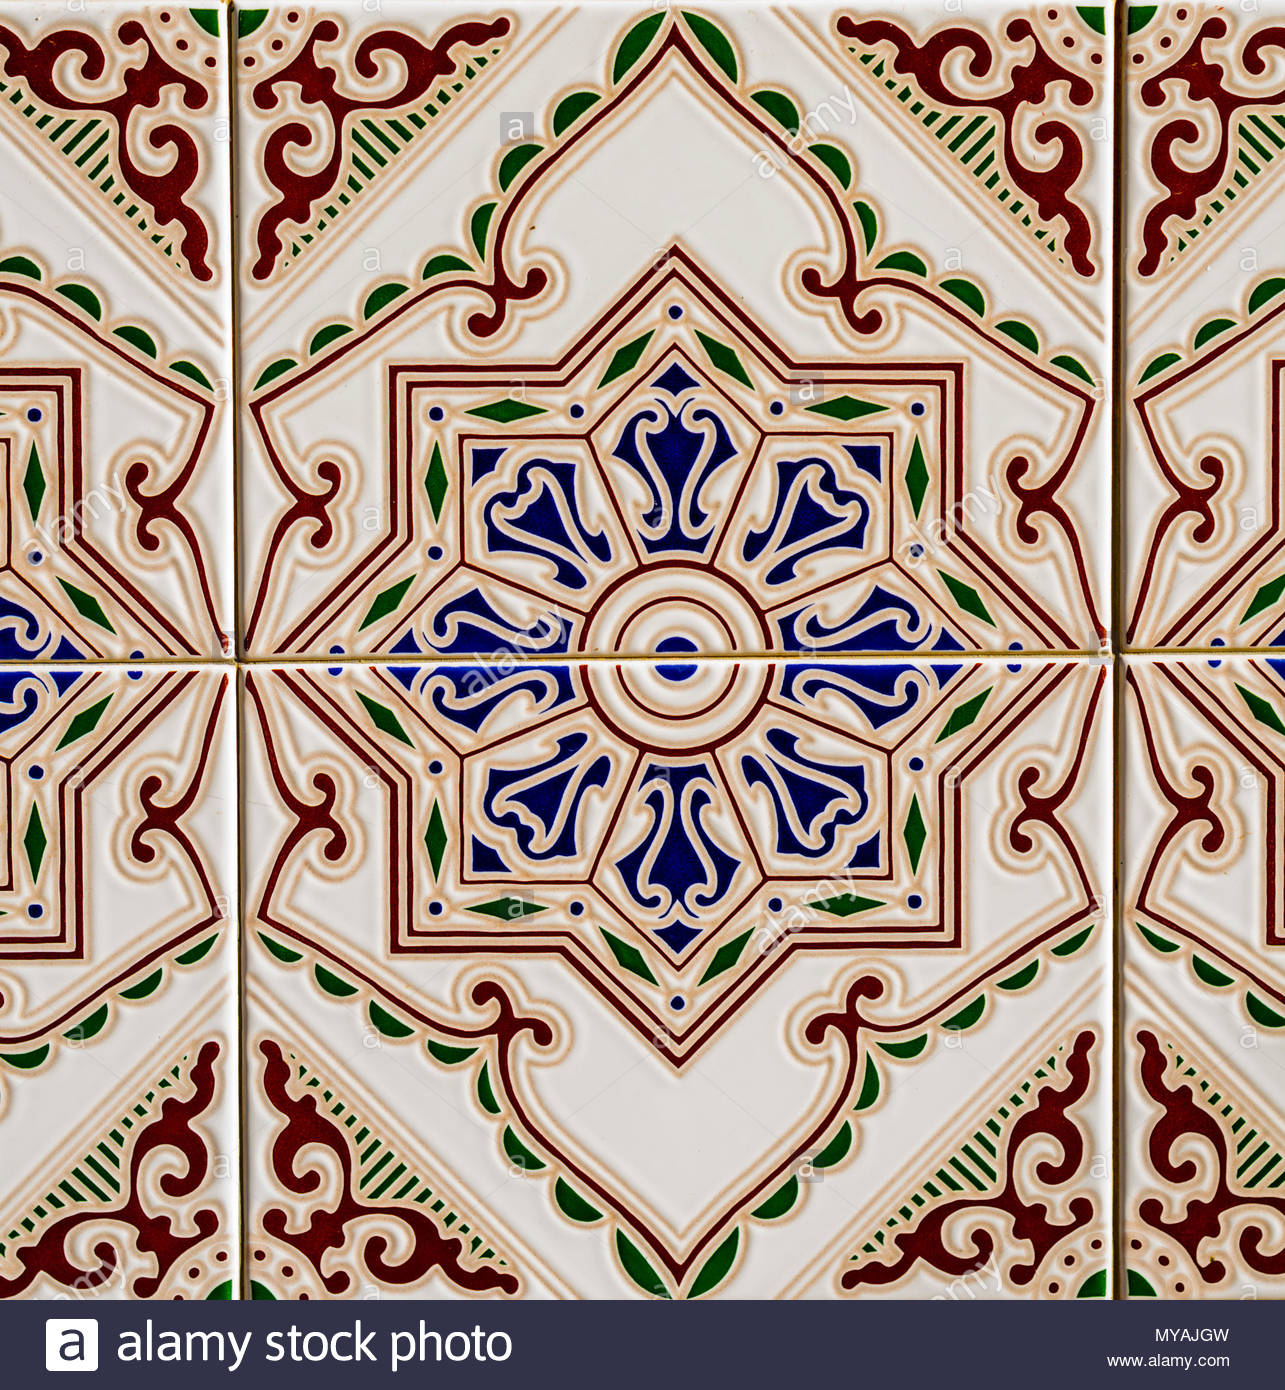 Traditional Ornamental Spanish Decorative Tiles, Original Throughout Spanish Ornamental Wall Decor (View 26 of 30)